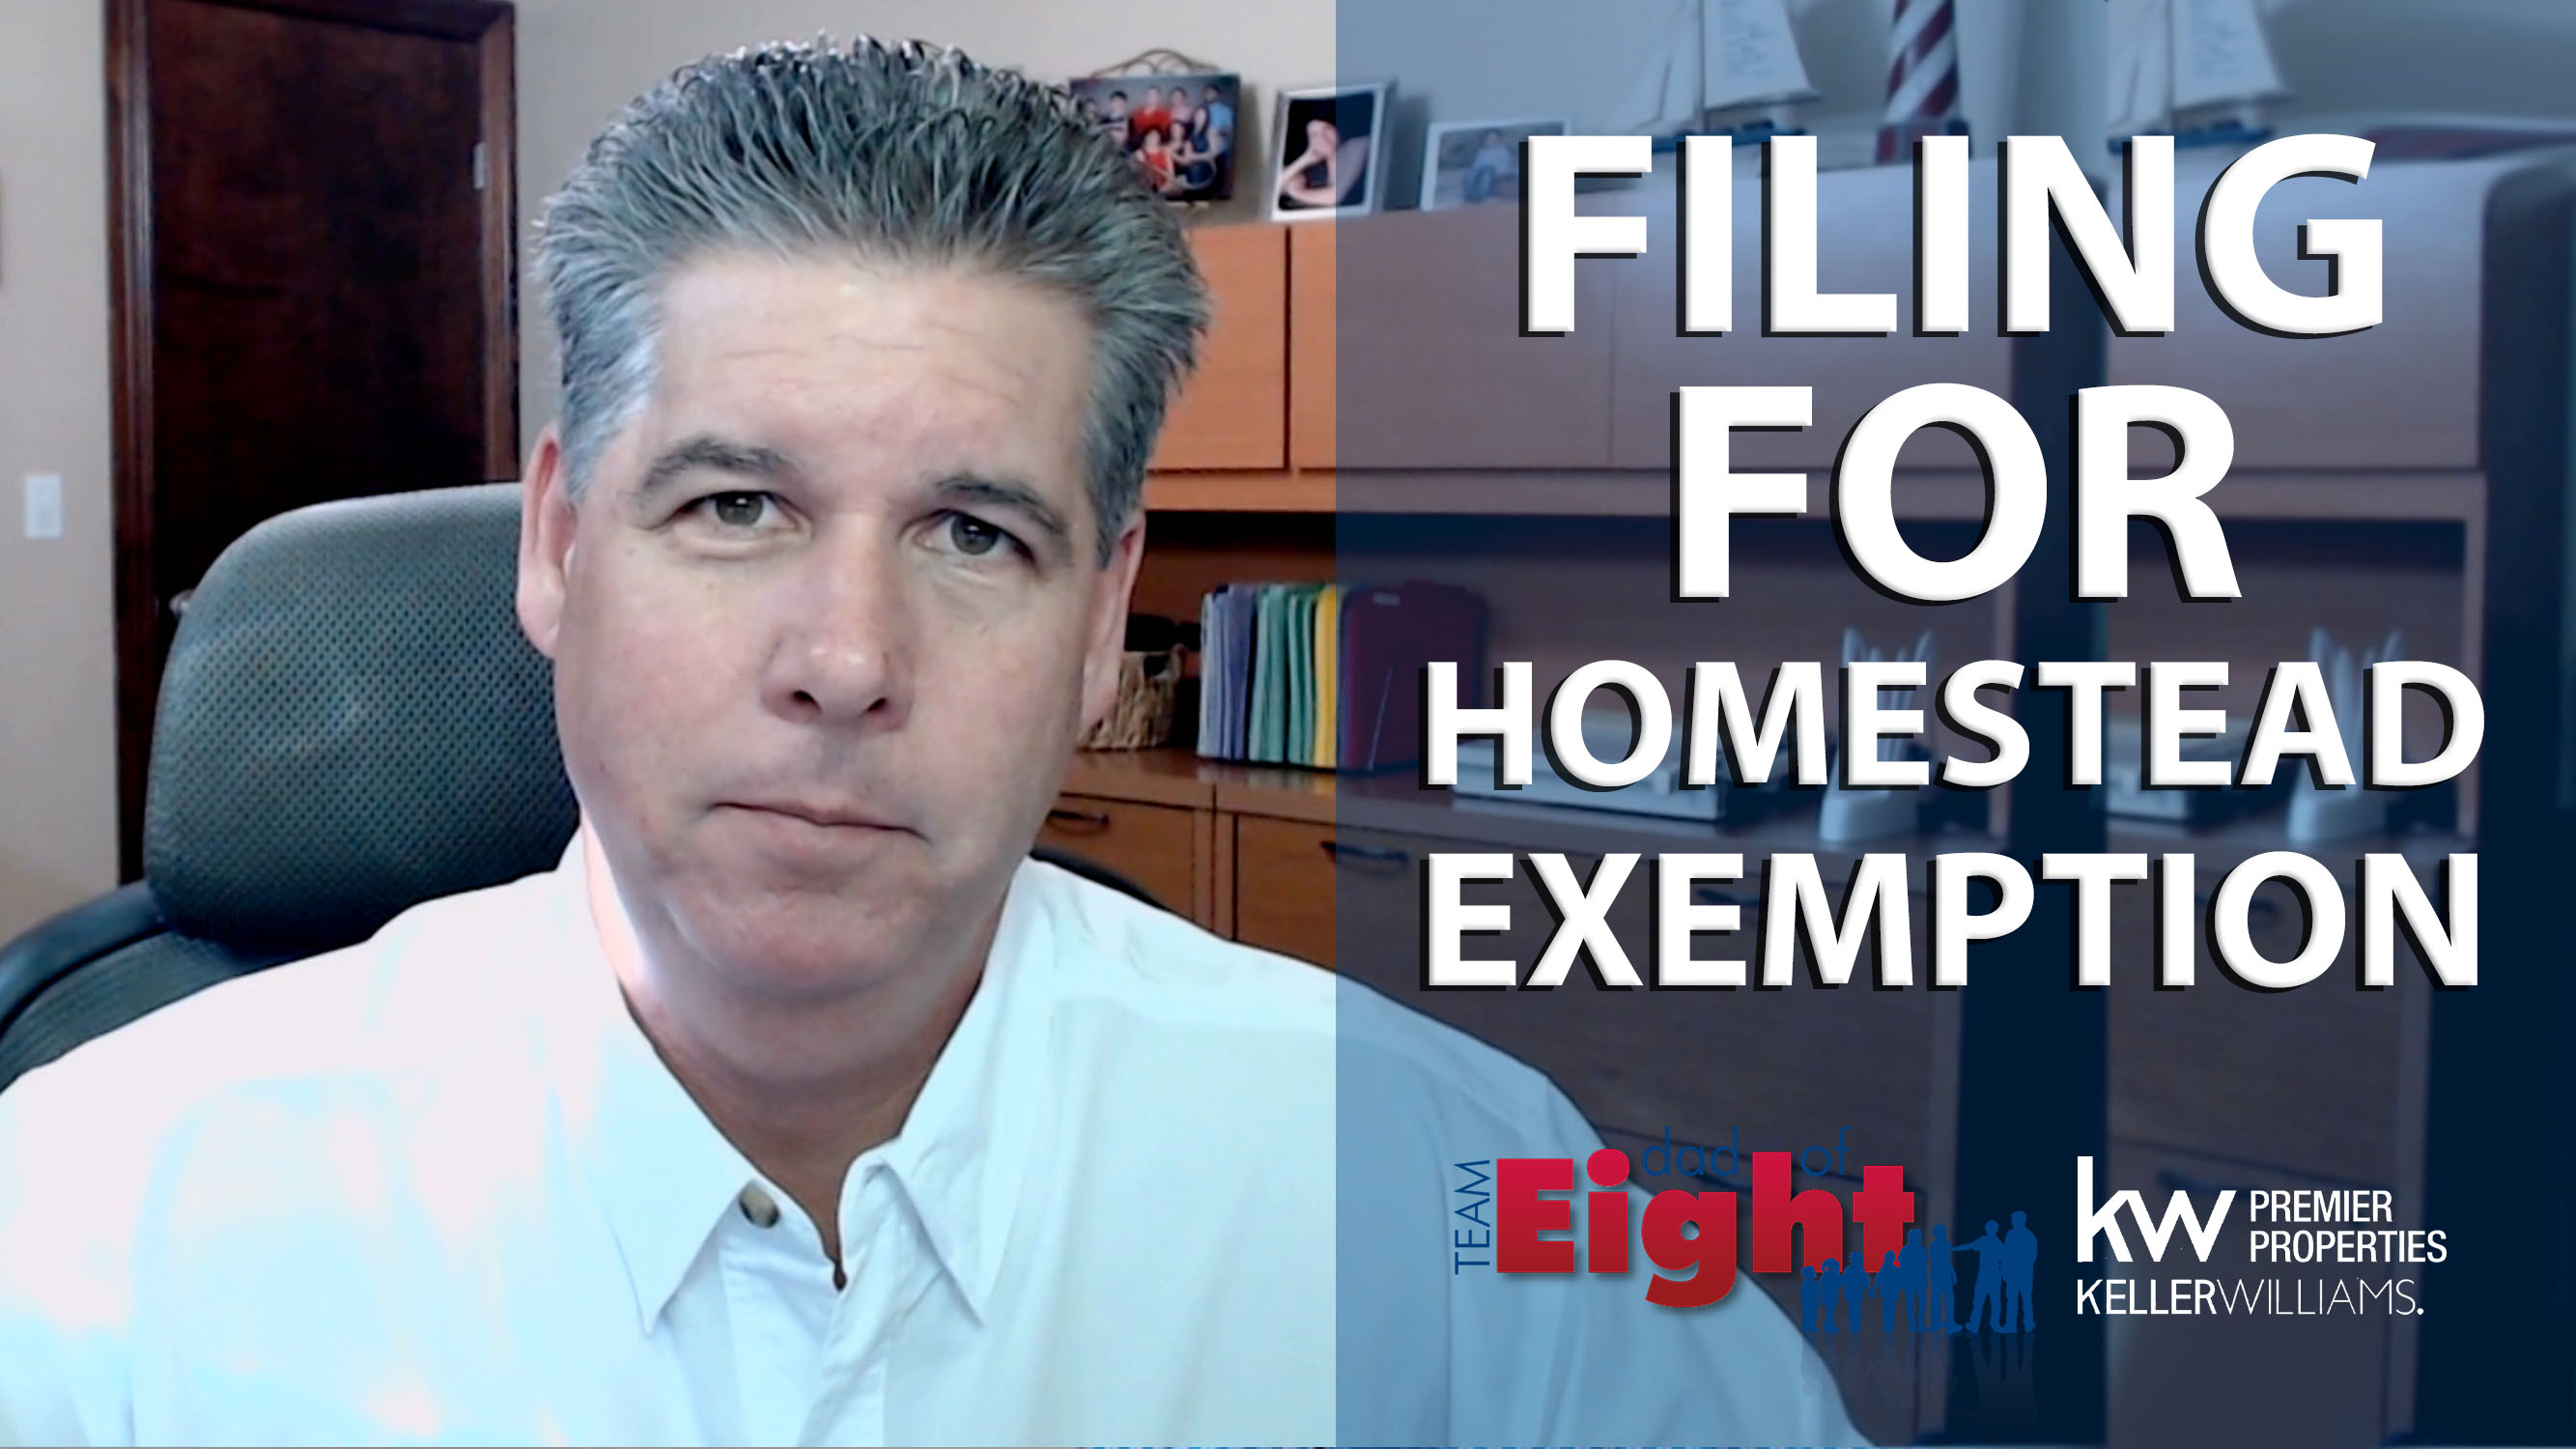 Q: How Do You File for Homestead Exemption?